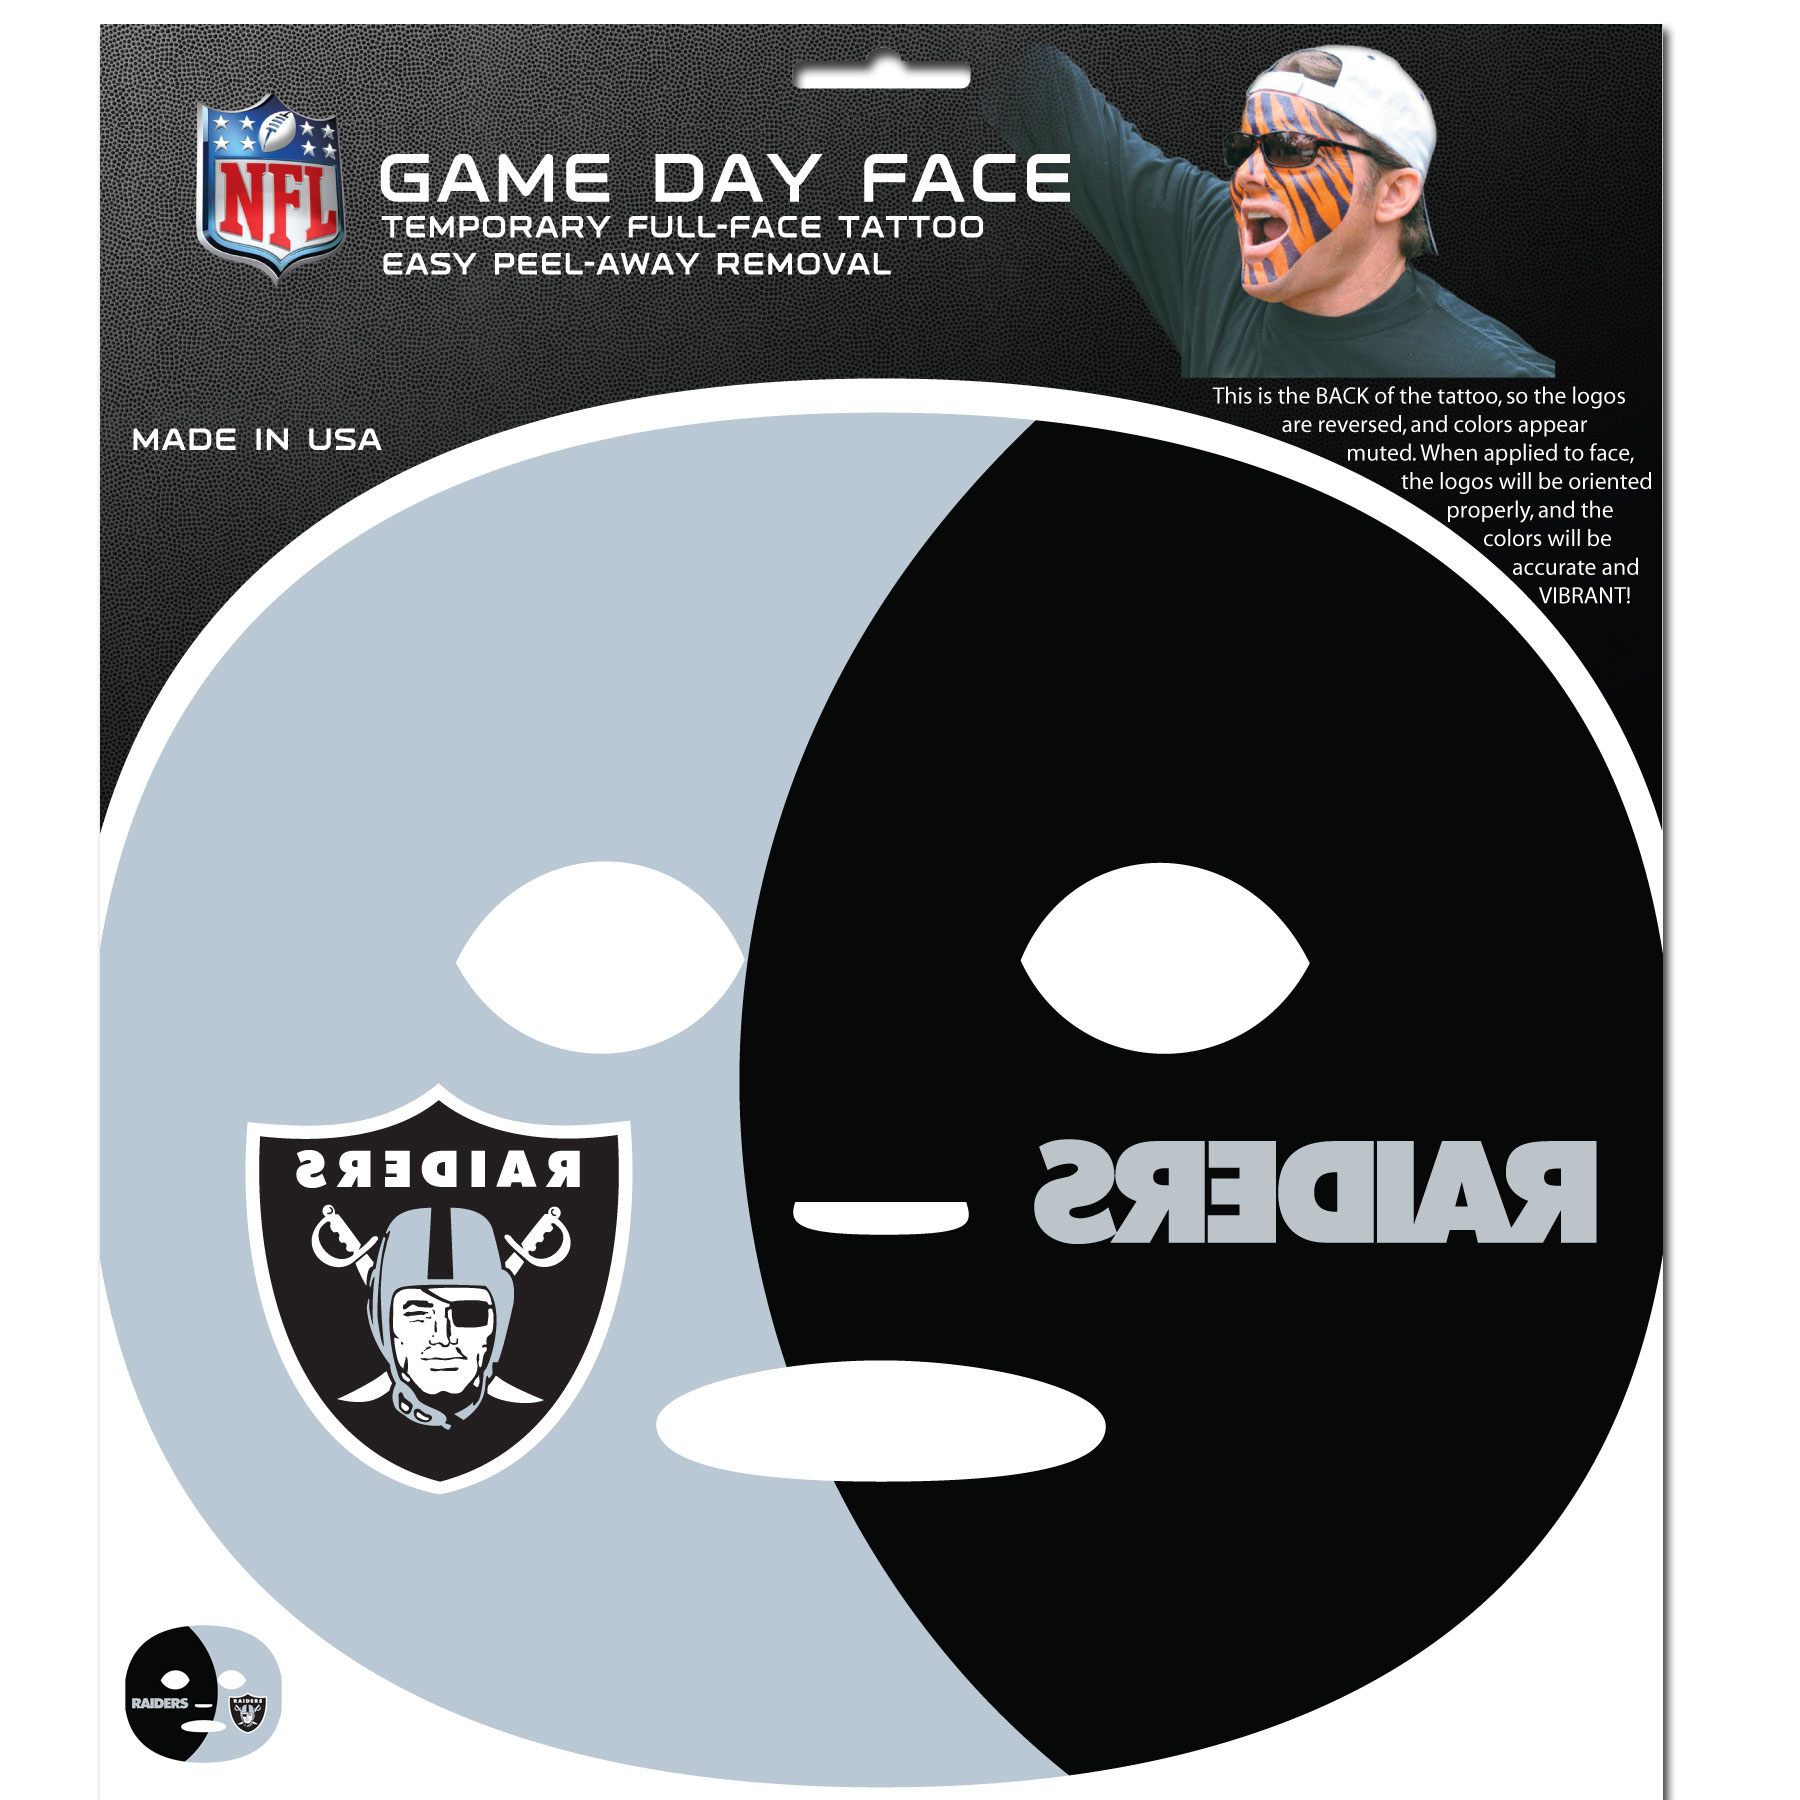 Oakland Raiders Set of 8 Game Day Faces - No better way to show your team pride than by painting your face. Siskiyou's Game Day Face Temporary Tattoo isn't your typical face paint. It is a water based application that doesn't smudge, smear or sweat off while you're wearing it and easily peels off after you're done celebrating your team's big Win! The temporary tattoo is large enough to trim down to fit your face. Our Game Day Face Temporary Tattoo's are fun for fans of all ages. You may have seen our product before, these are the same Temporary Face Tattoos as pitched on ABC's Shark Tank.